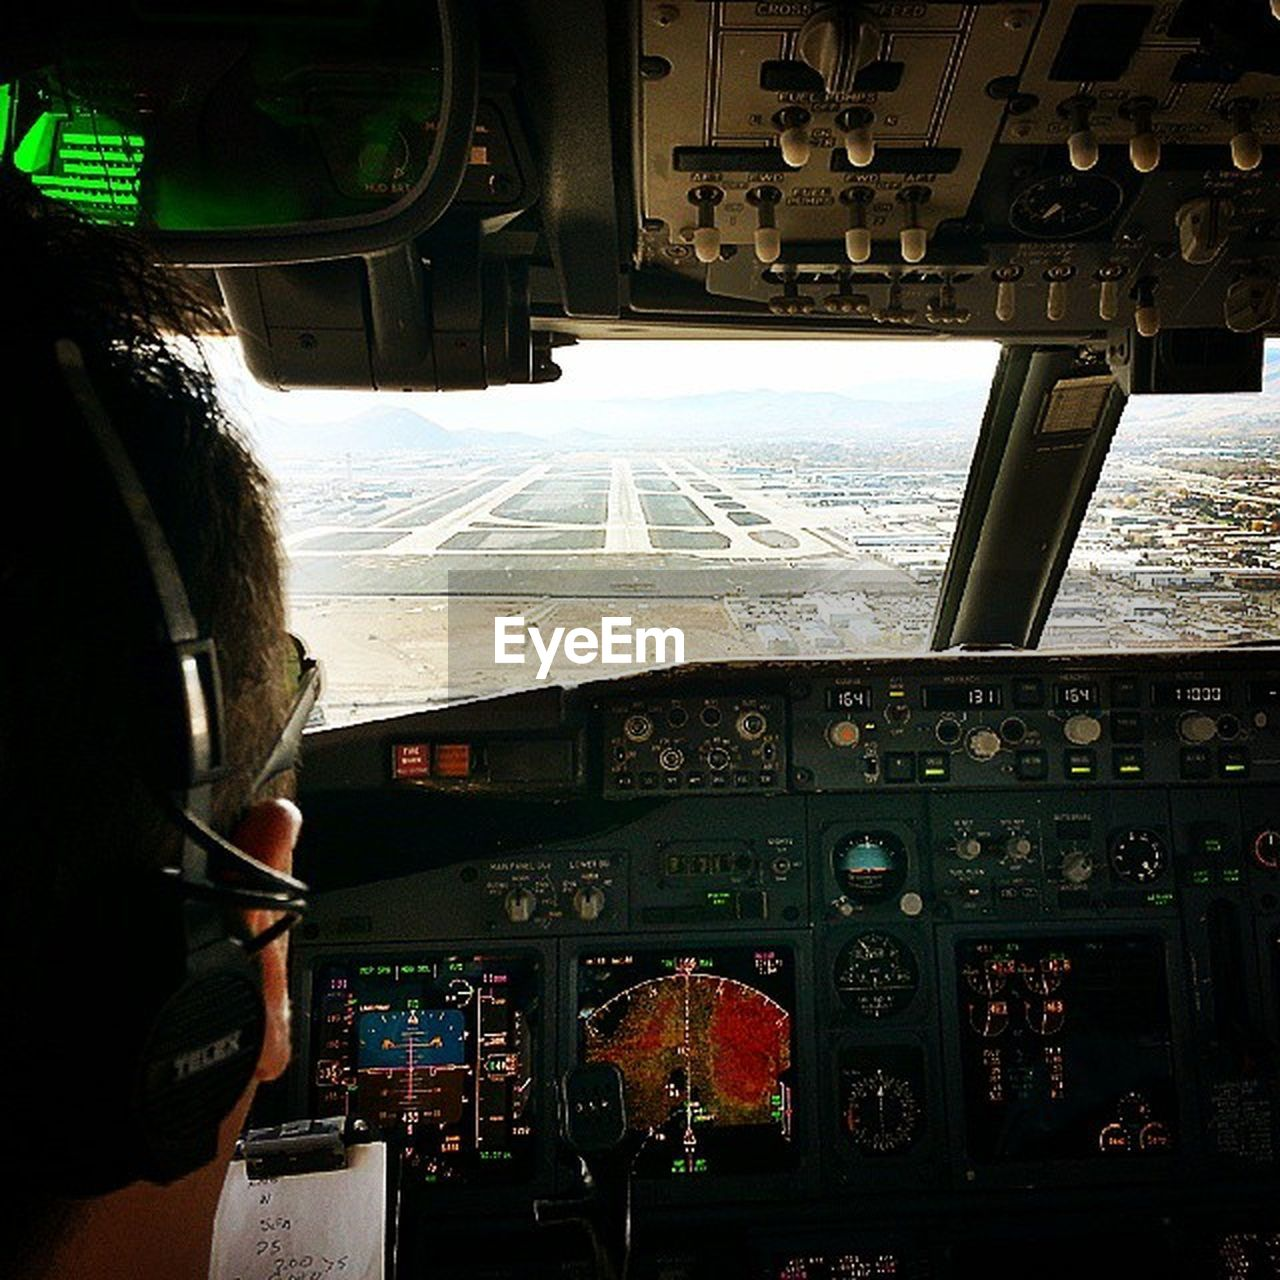 cockpit, vehicle interior, airplane, pilot, control panel, transportation, piloting, dashboard, flying, air vehicle, control, co-pilot, windshield, mode of transport, travel, commercial airplane, occupation, aerospace industry, gauge, day, technology, adult, adults only, speedometer, indoors, one person, people, sky